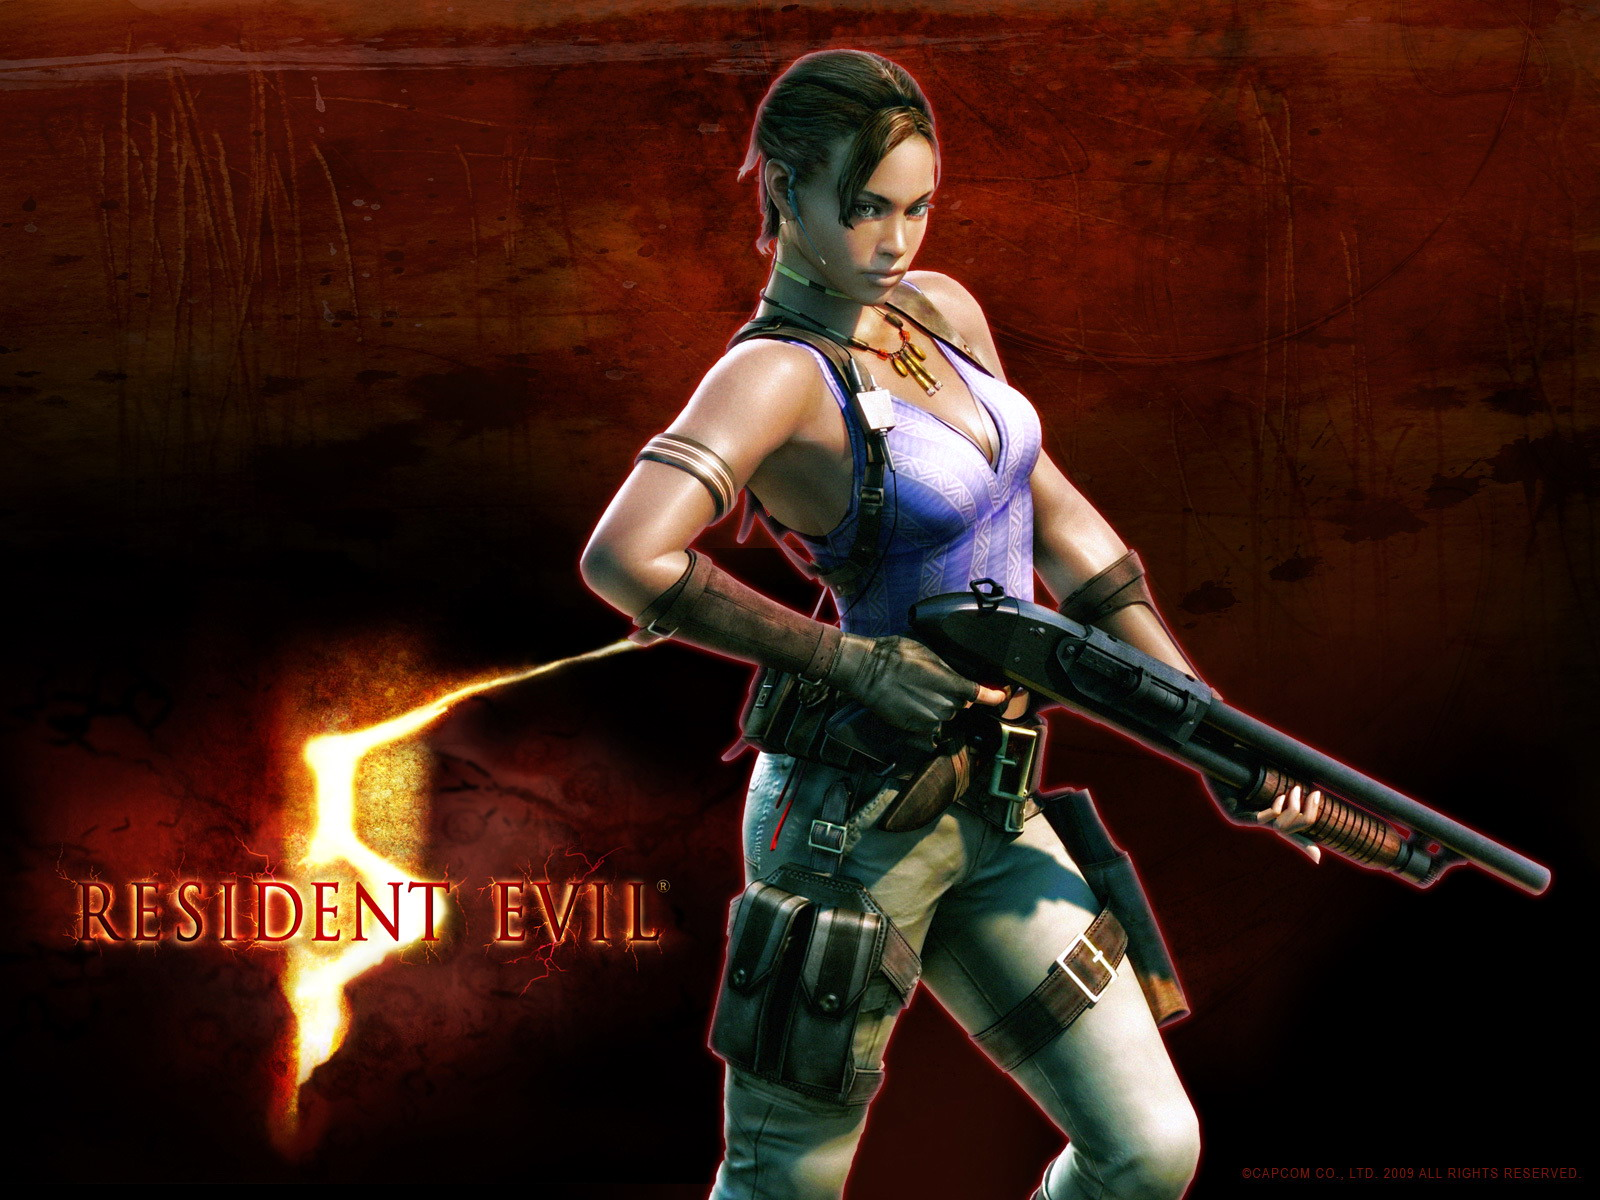 Wallpaper image of Resident Evil 5 PC Game